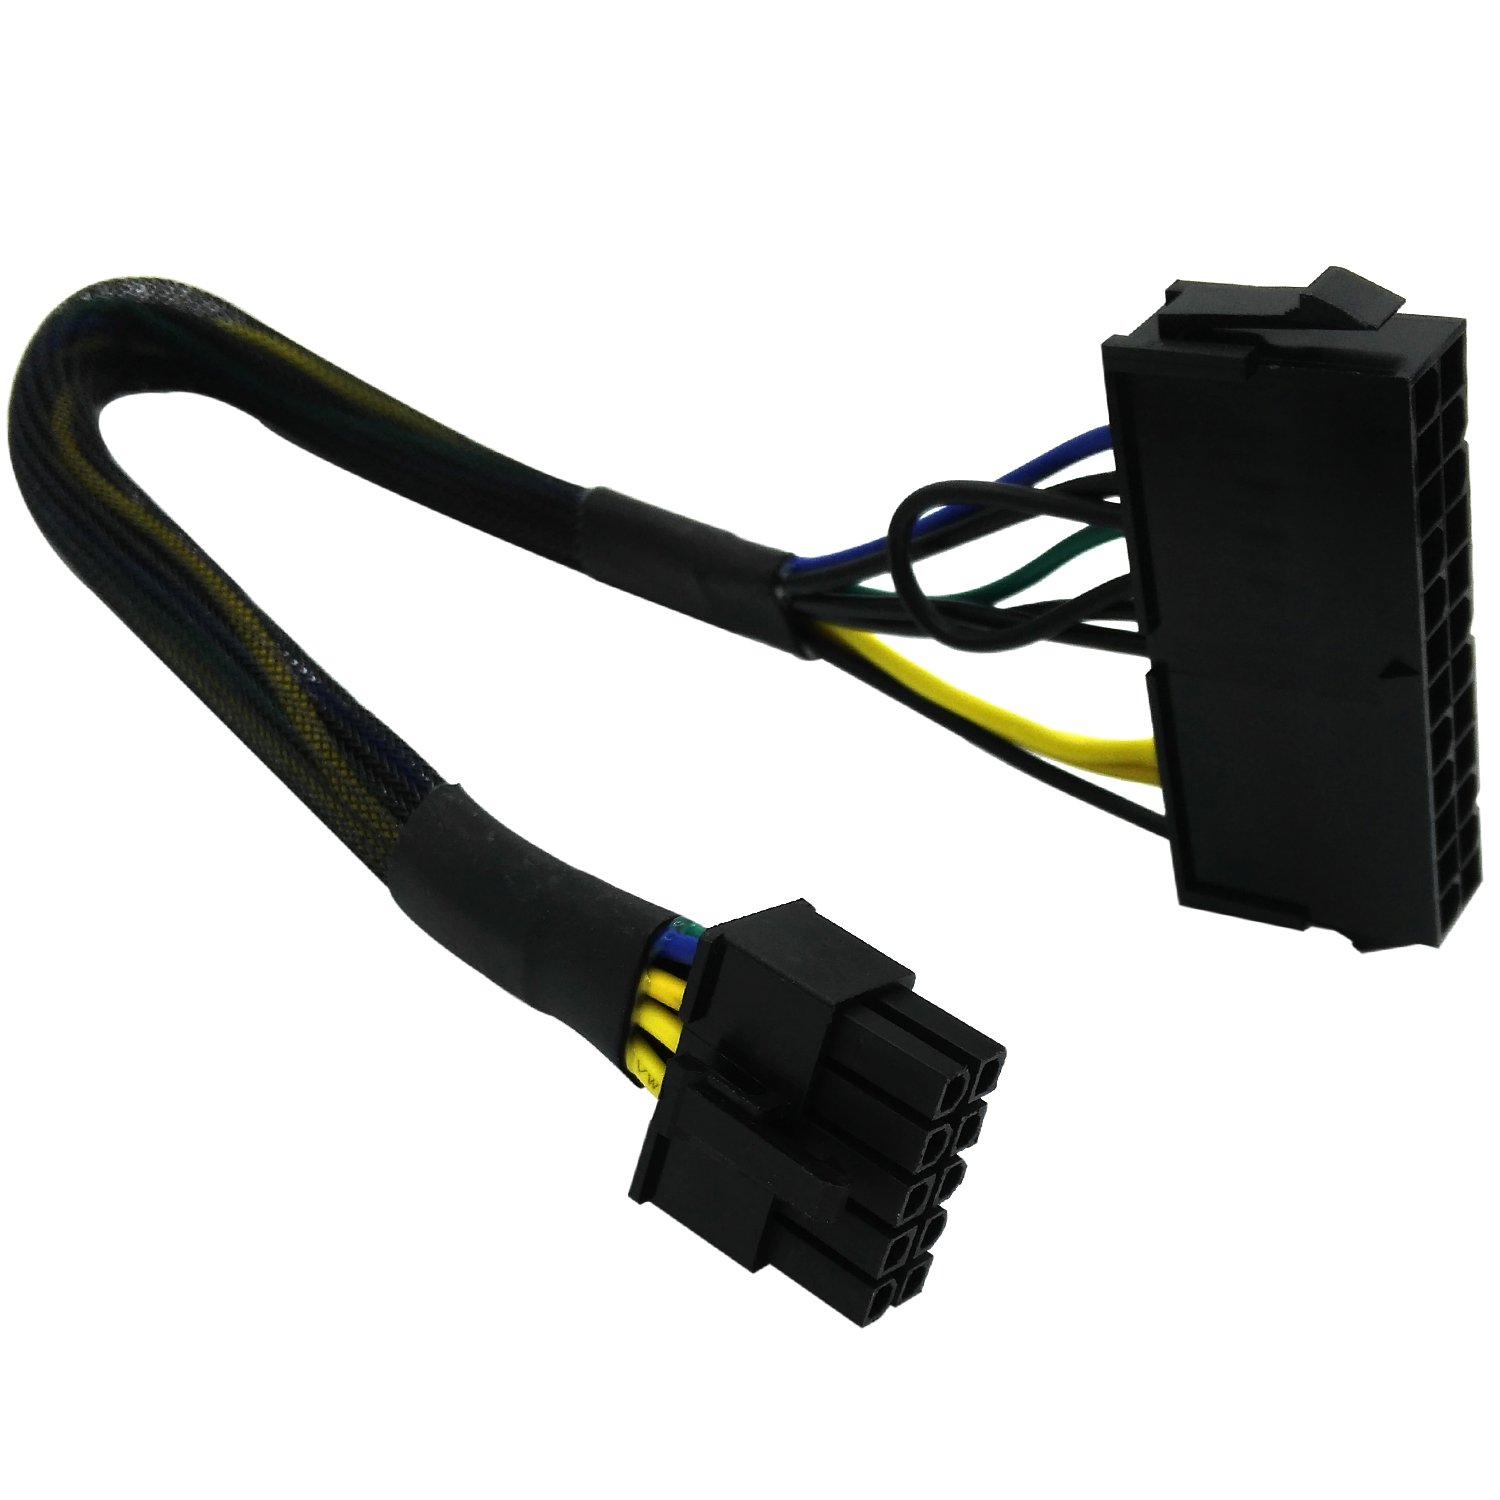 COMeap 24 Pin to 10 Pin ATX PSU Main Power Adapter Braided Sleeved Cable for IBM/Lenovo PCs and Servers 12-inch(30cm) by COMeap (Image #1)